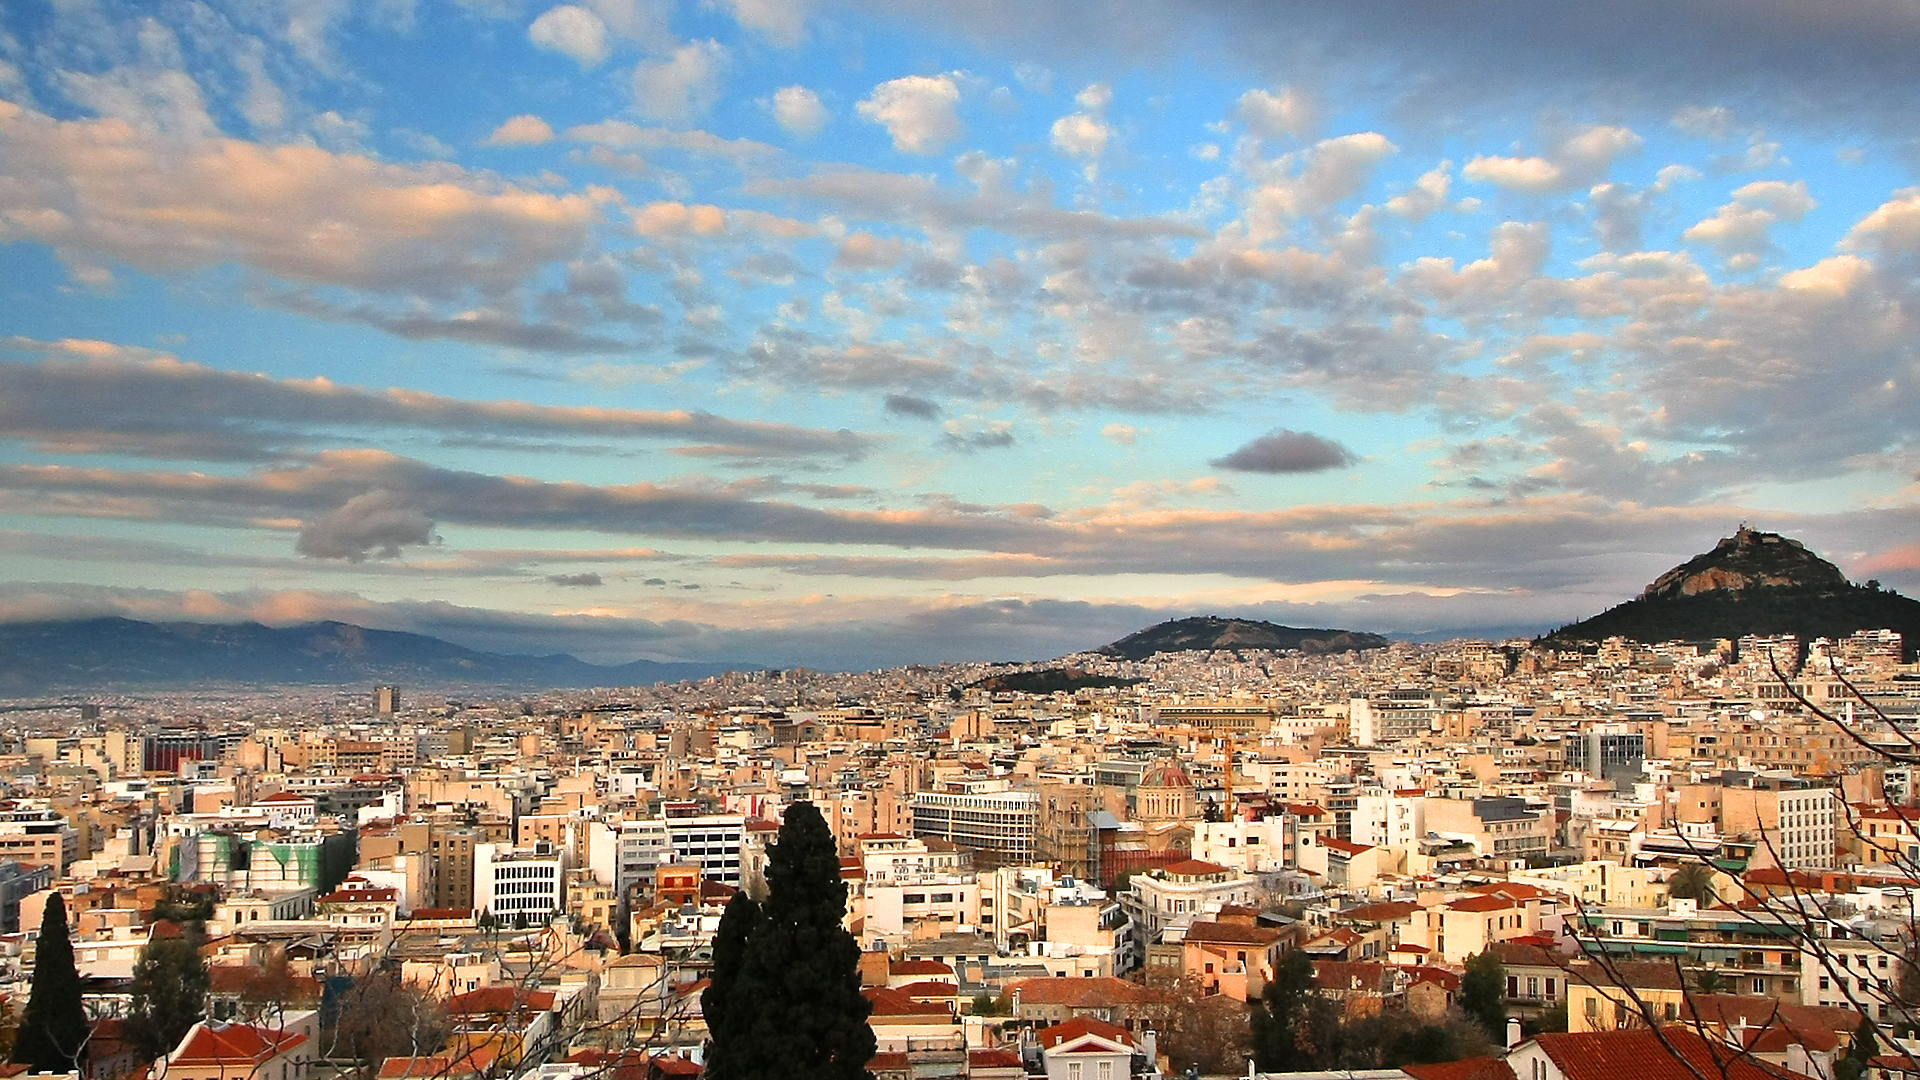 Athens Wallpapers PC 67HB241   4USkY 1920x1080